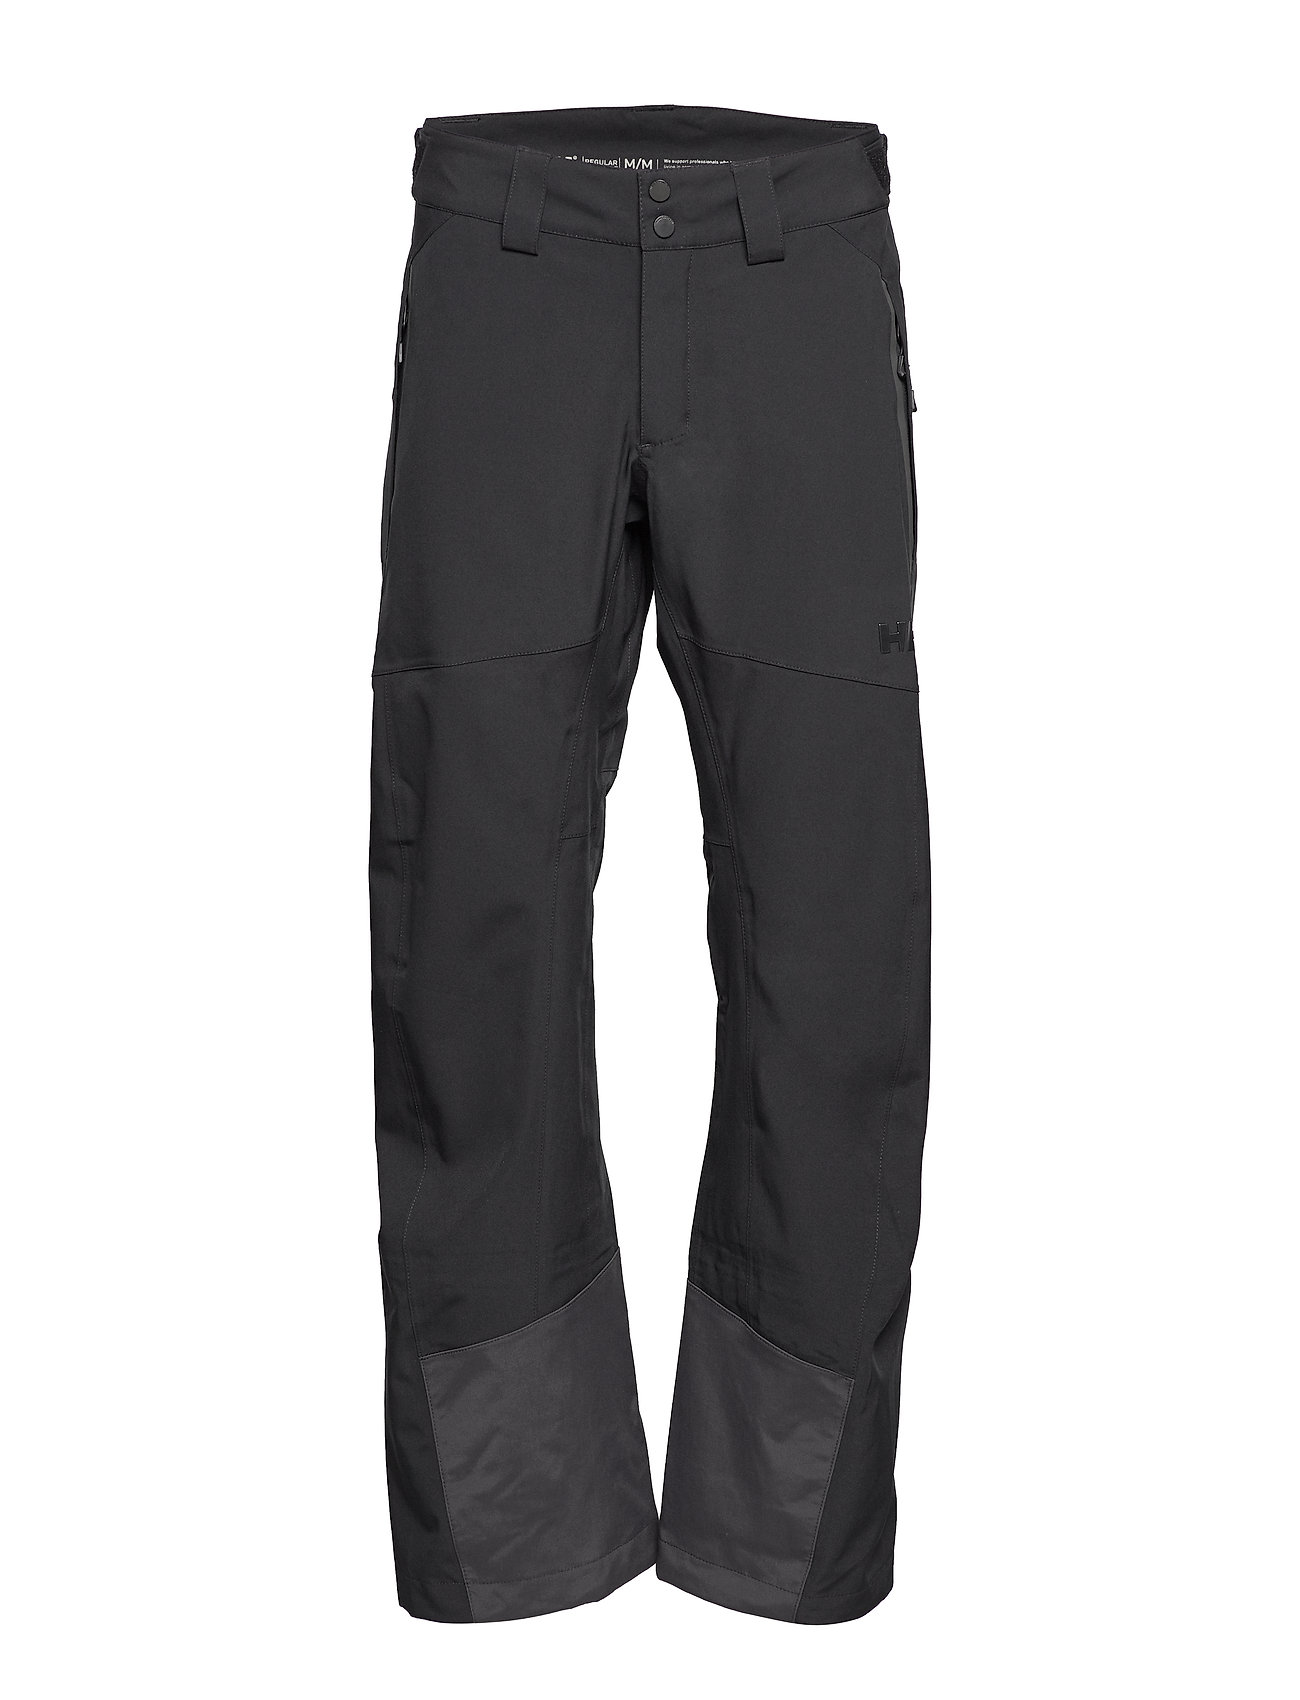 Helly Hansen ALPHA SHELL PANT - BLACK